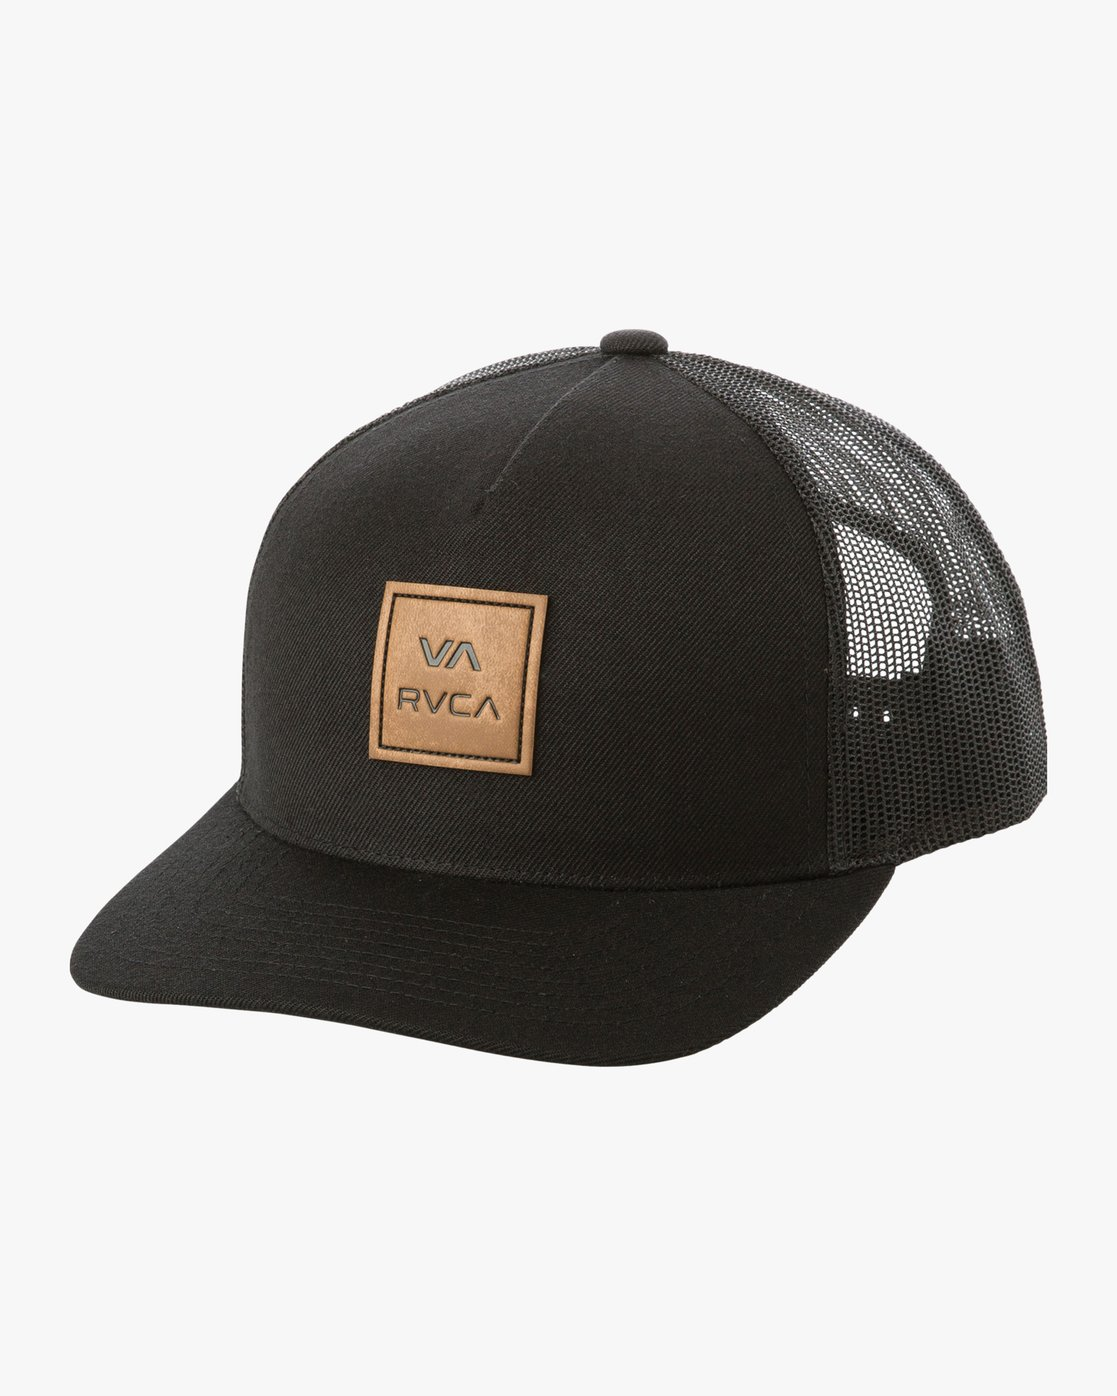 63534d4fd78 0 VA All The Way Curved Brim Trucker Hat Black MAHWPRVA RVCA